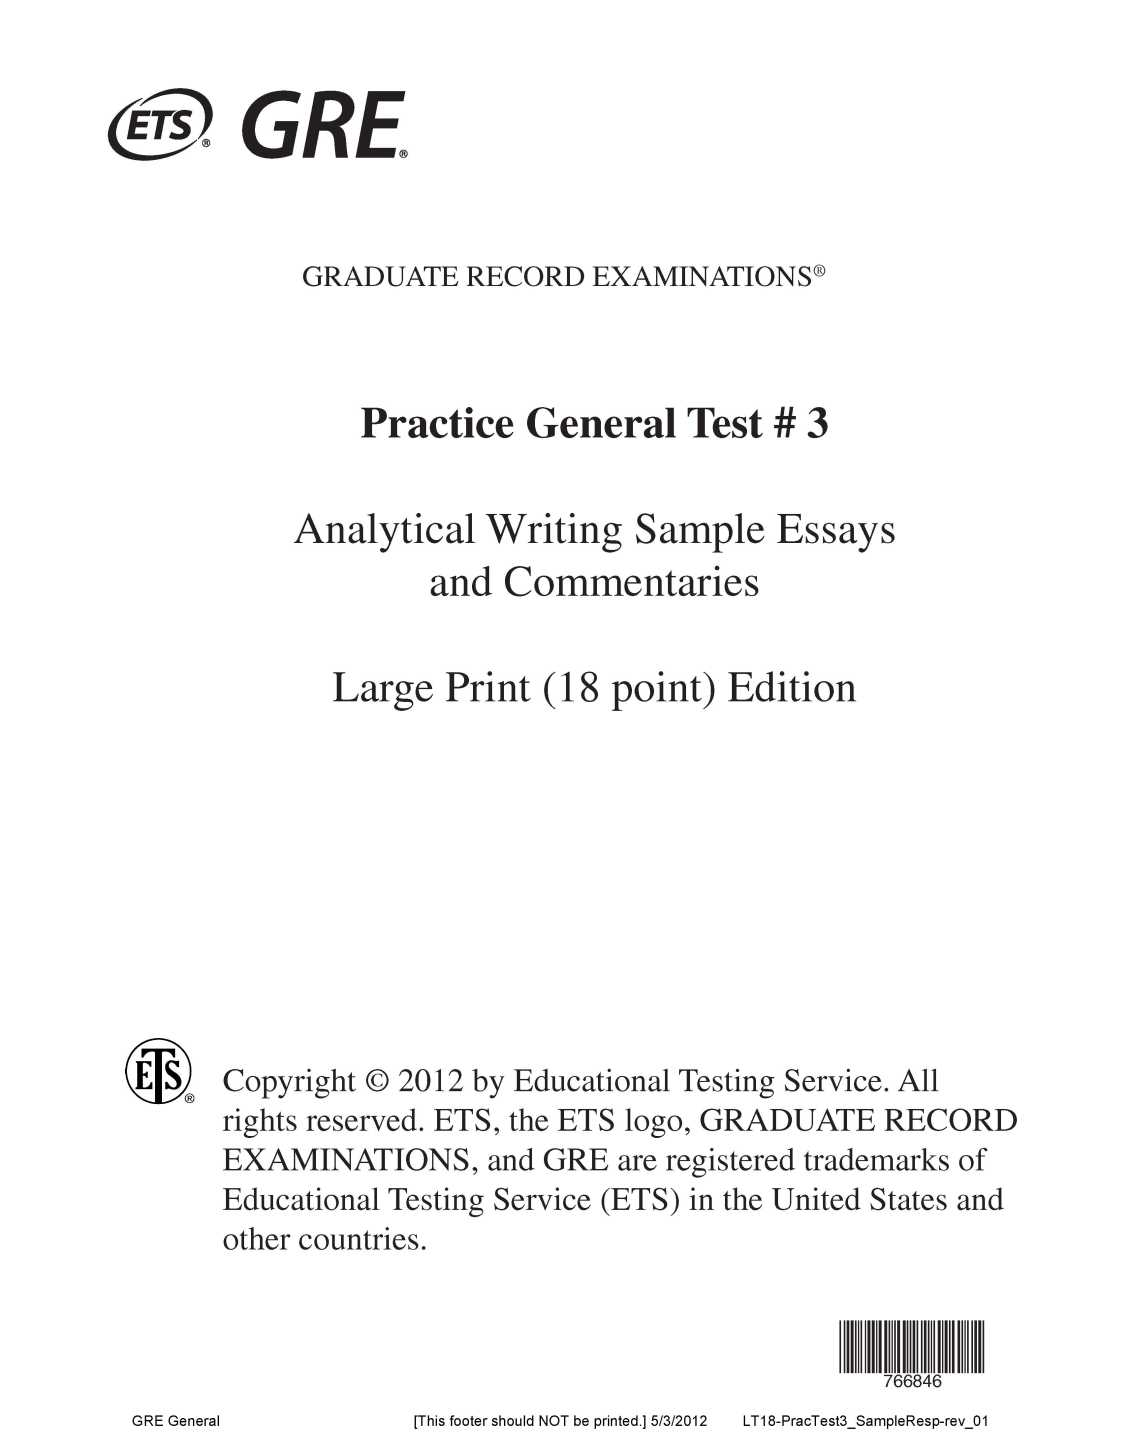 002 Gre Essay Topics Essays Issue Meet The Categories Of Writing Pdf Books Strategies Practices Preparation Tips Format Rare Argument Answers Magoosh Pool Full